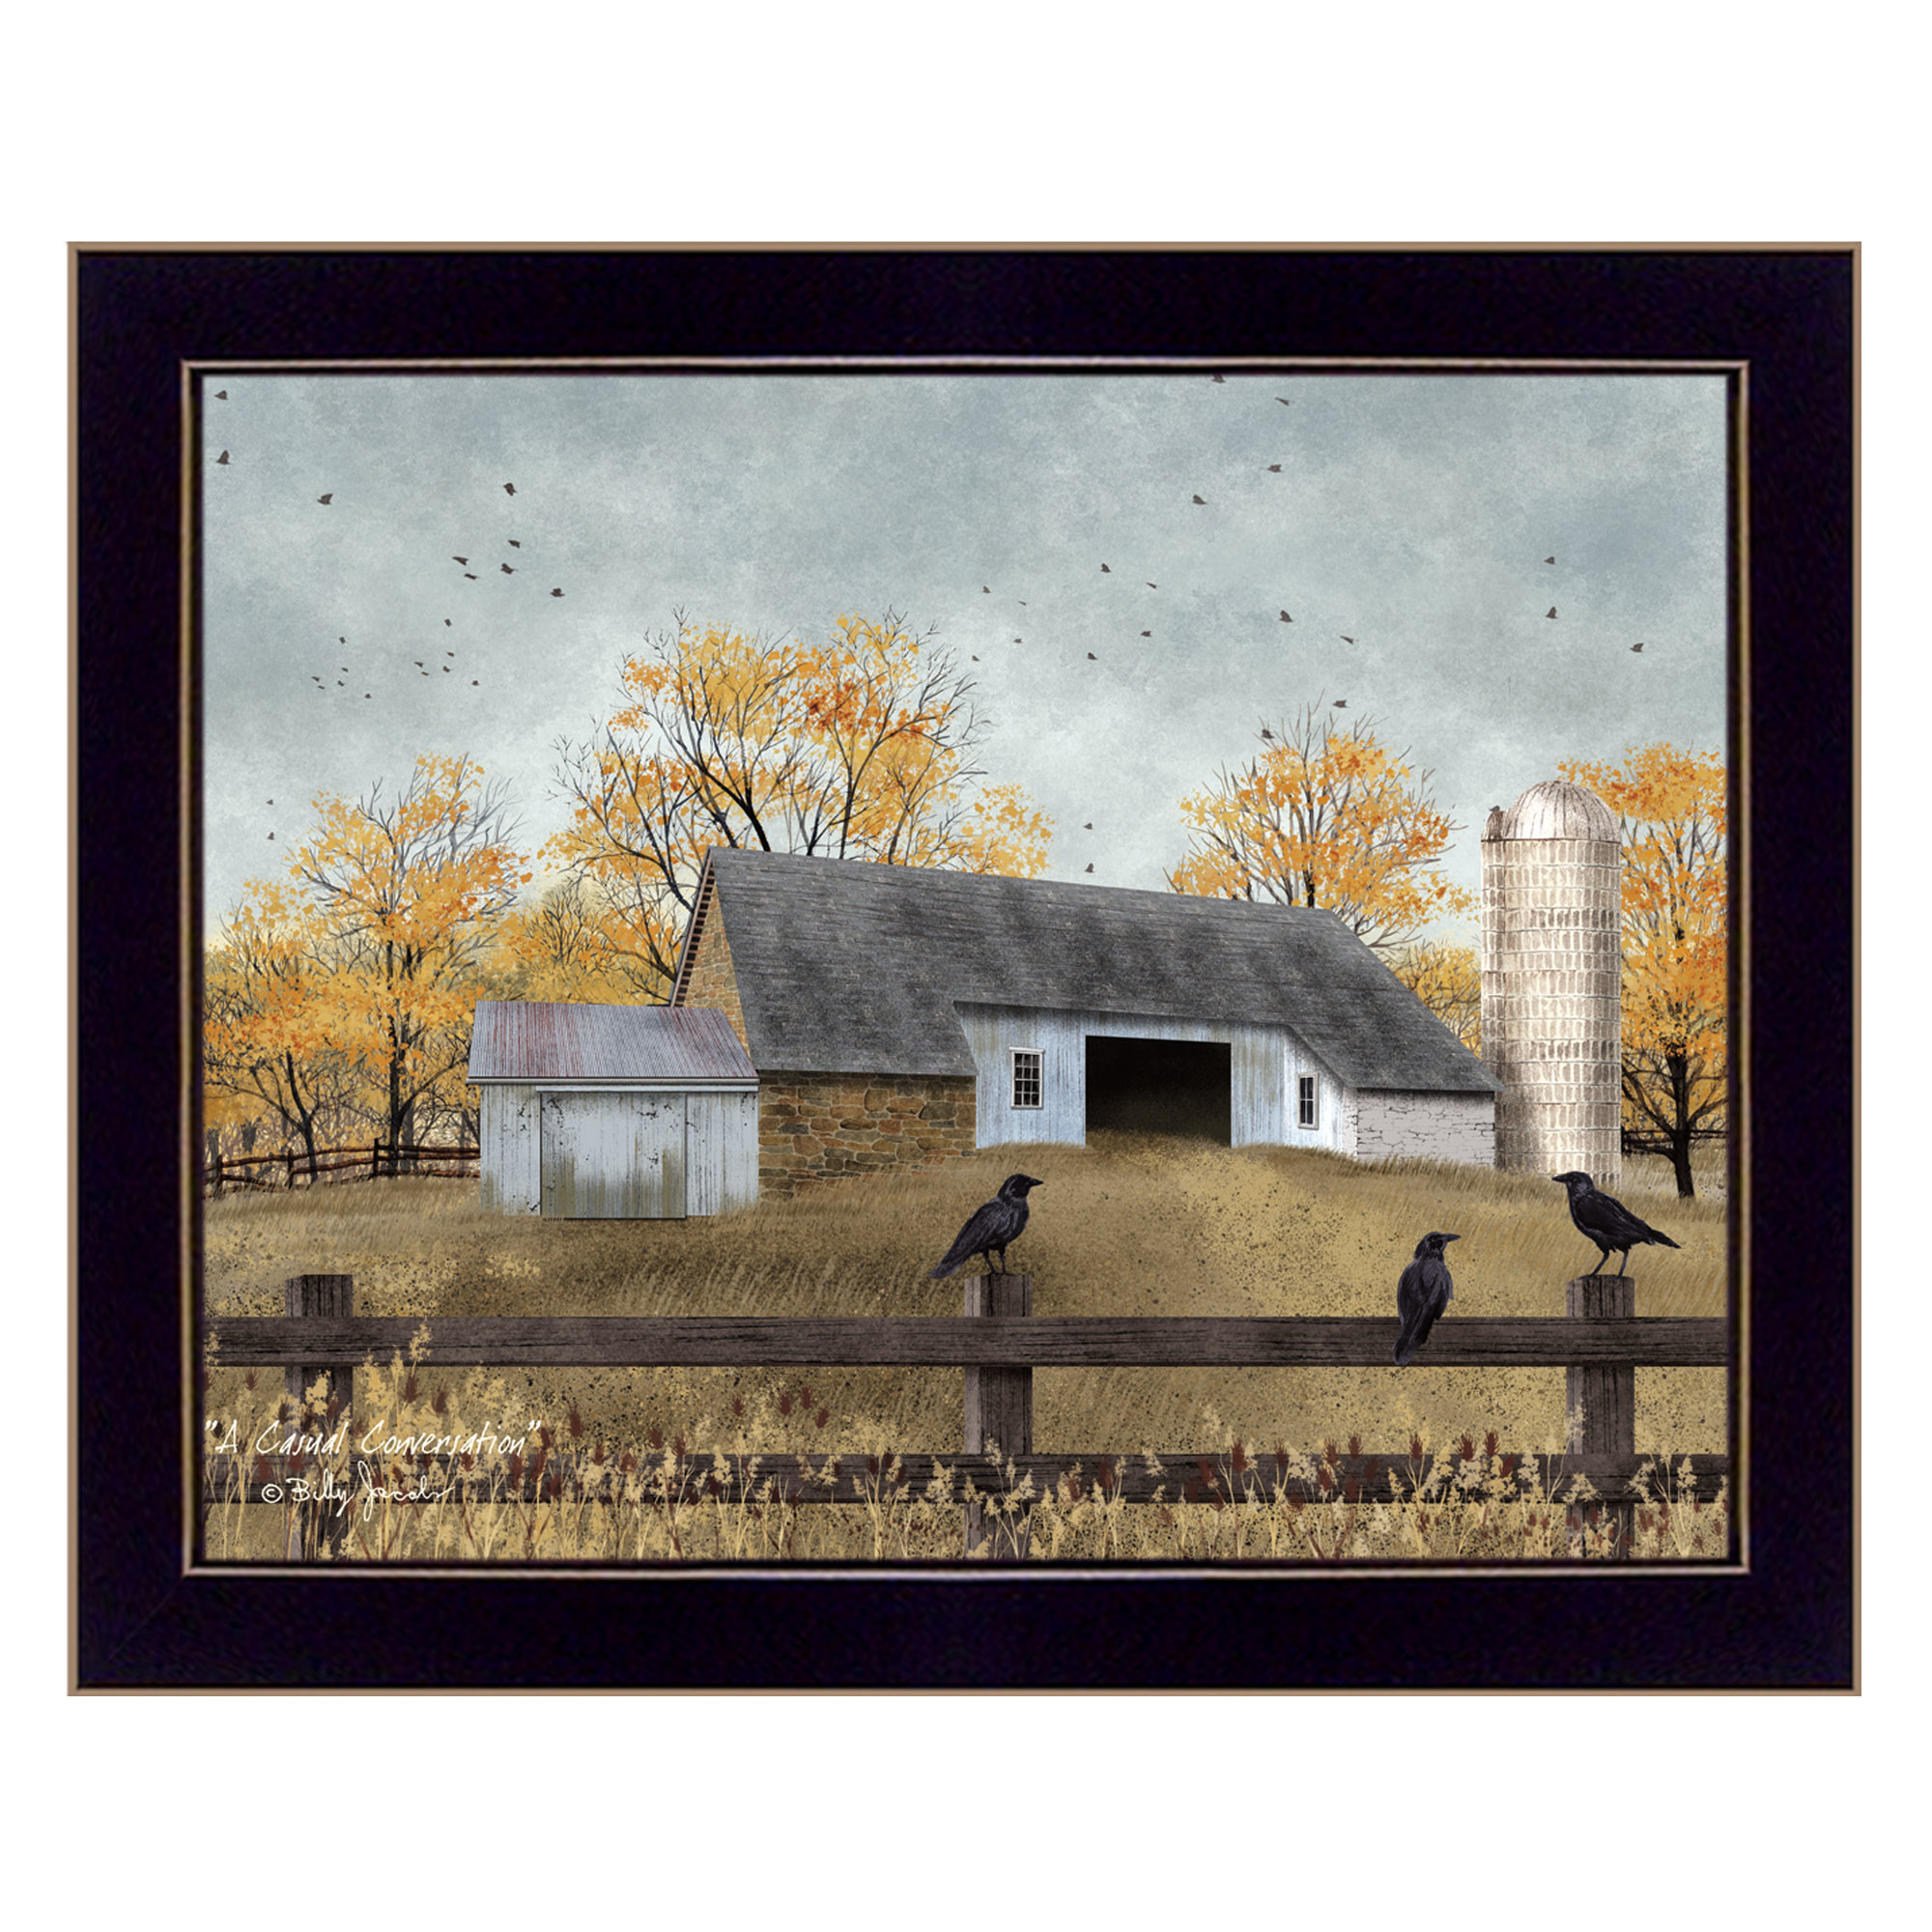 Bj1095A-712 A Casual Conversation by Billy Jacobs. Farm setting with barn & black crows; black framed print size is 18x14 and arrives ready to hang. The surface of the print is textured with a fade resistant coating so no glass is necessary. Arrives ready to hang. Made in the USA by skilled American workers. * Textured Artwork with a 'rolled on' acid-free acrylic coating to create a canvas painting effect. * UV Protectant Coating protects artwork from fading. No glass is necessary. * Moulding adds natural beauty to the framed art. Frame is keyholed for the easy hanging. * This Fine Home Decor piece made in the USA by Woman Owned Business (Wbe) is a perfect gift for a friend or relative. *